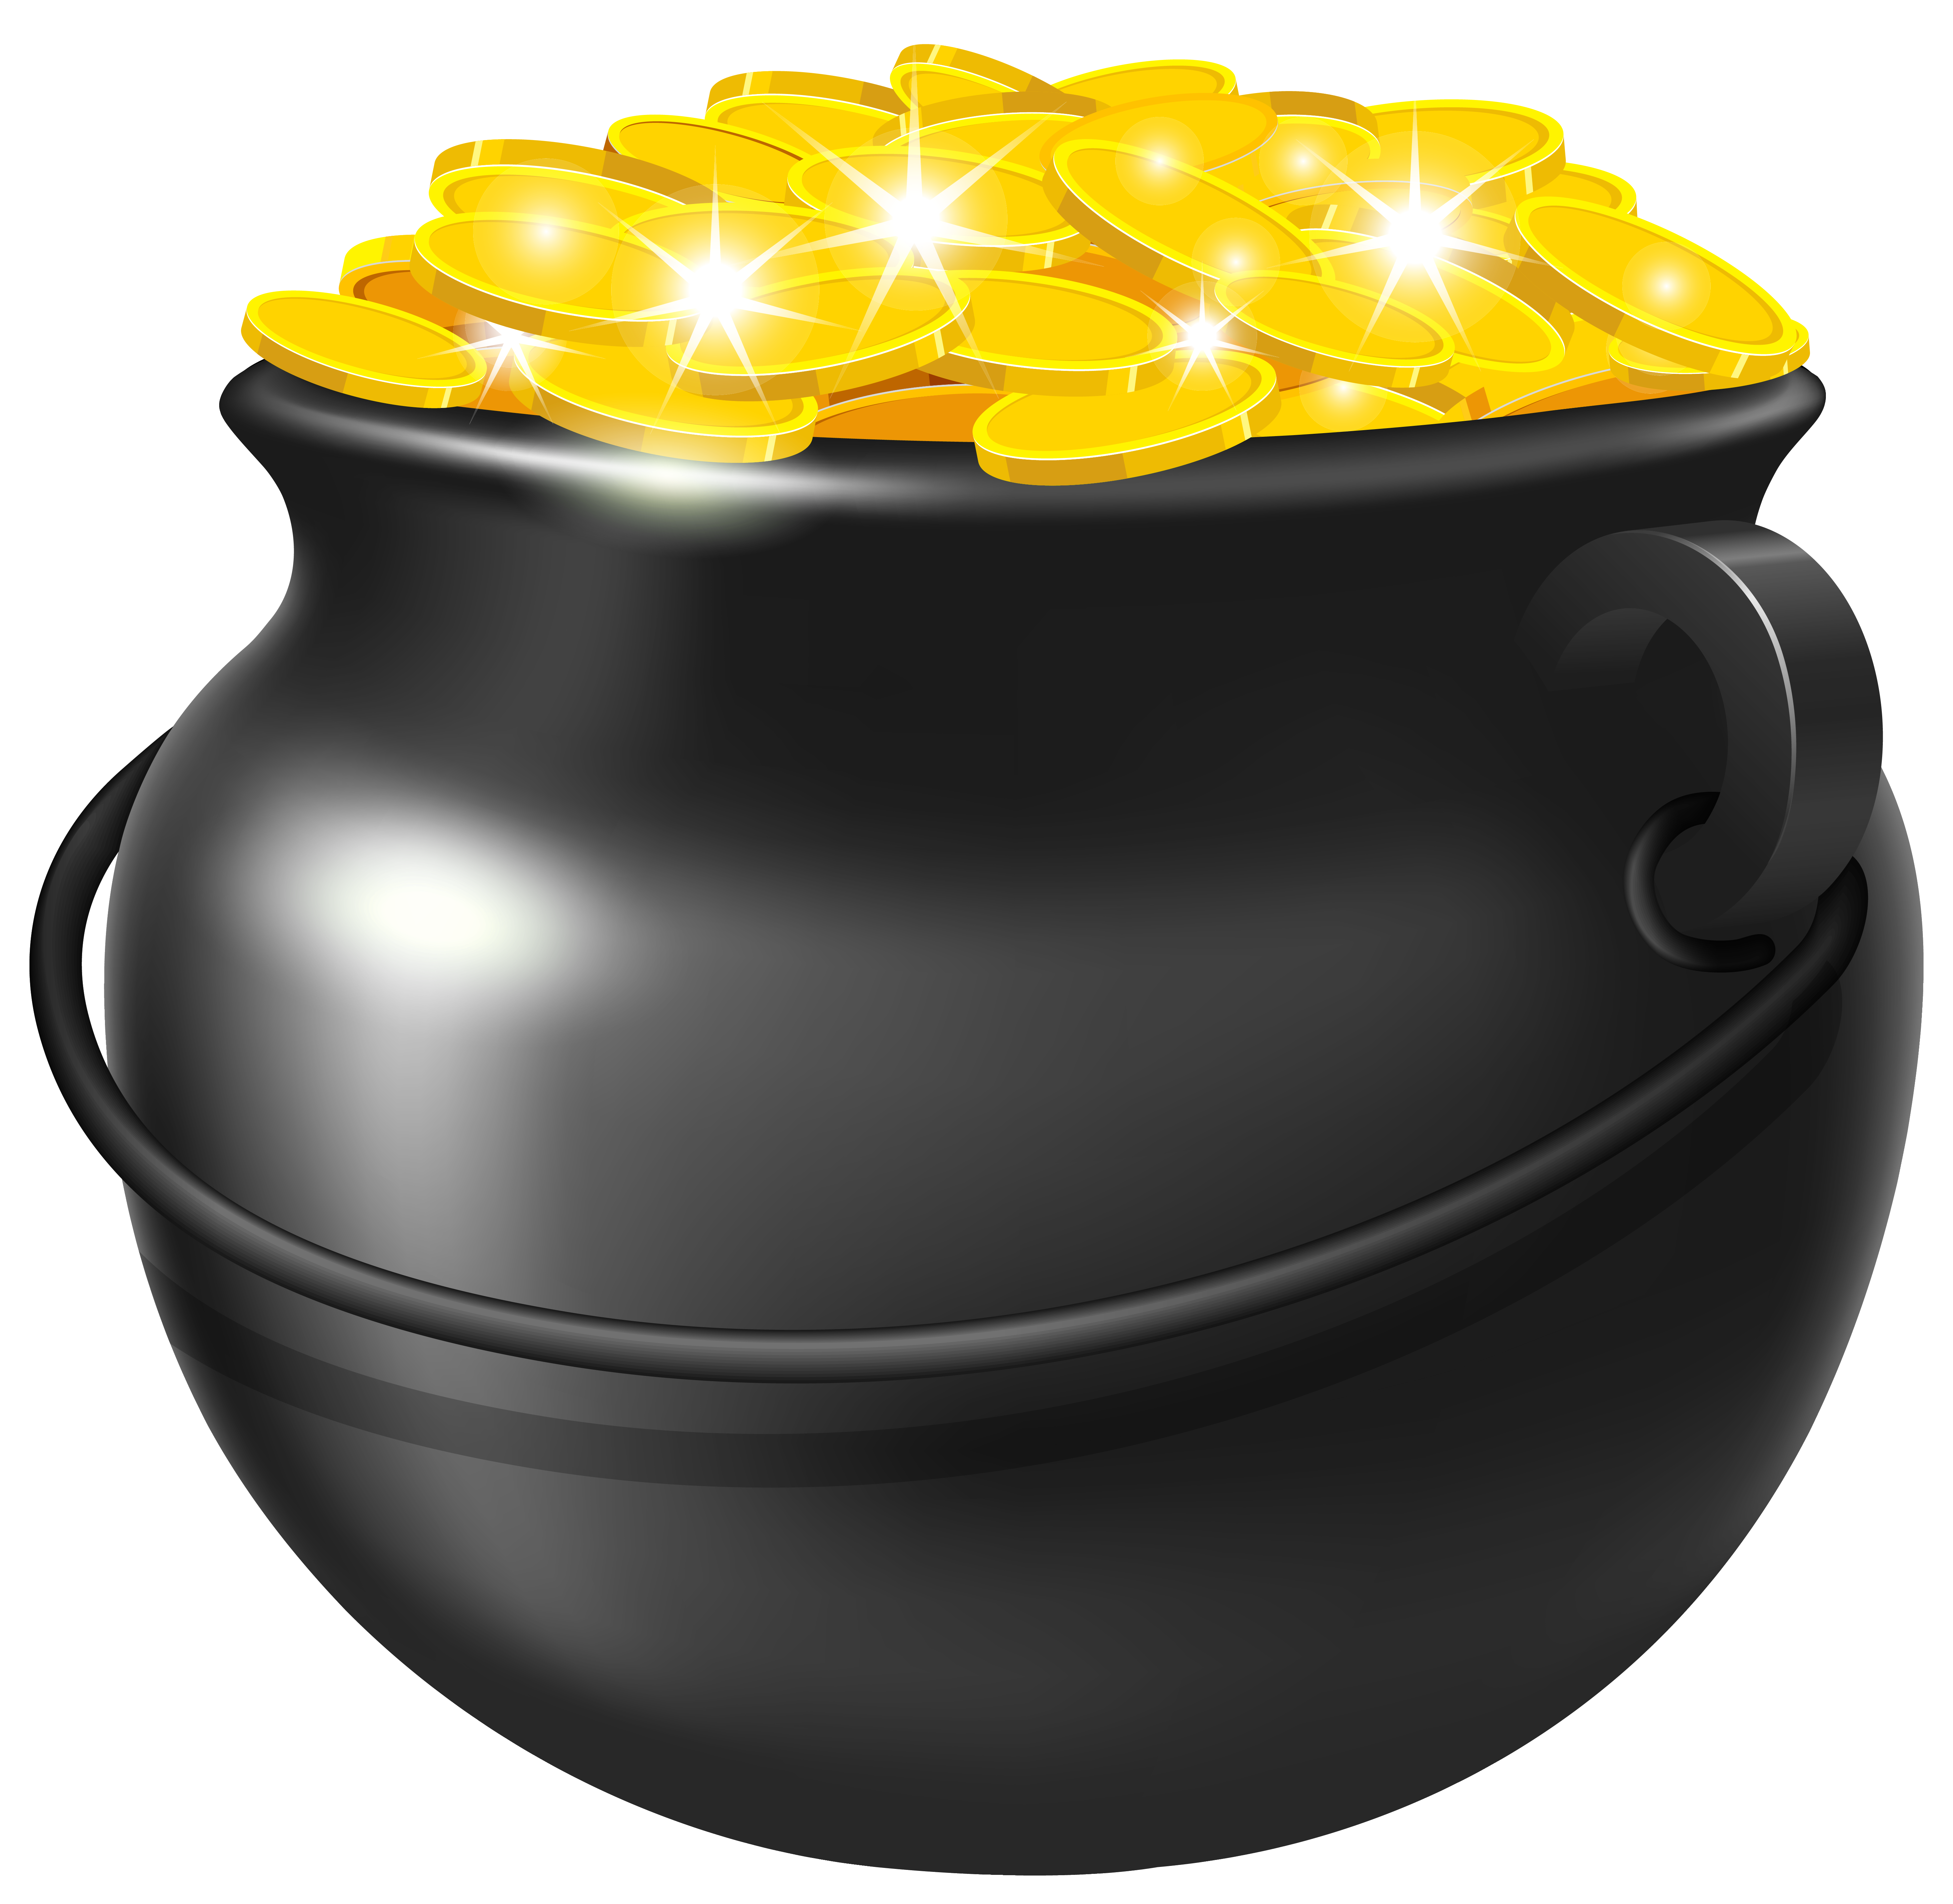 Cartoon Pot Of Gold Clipart.